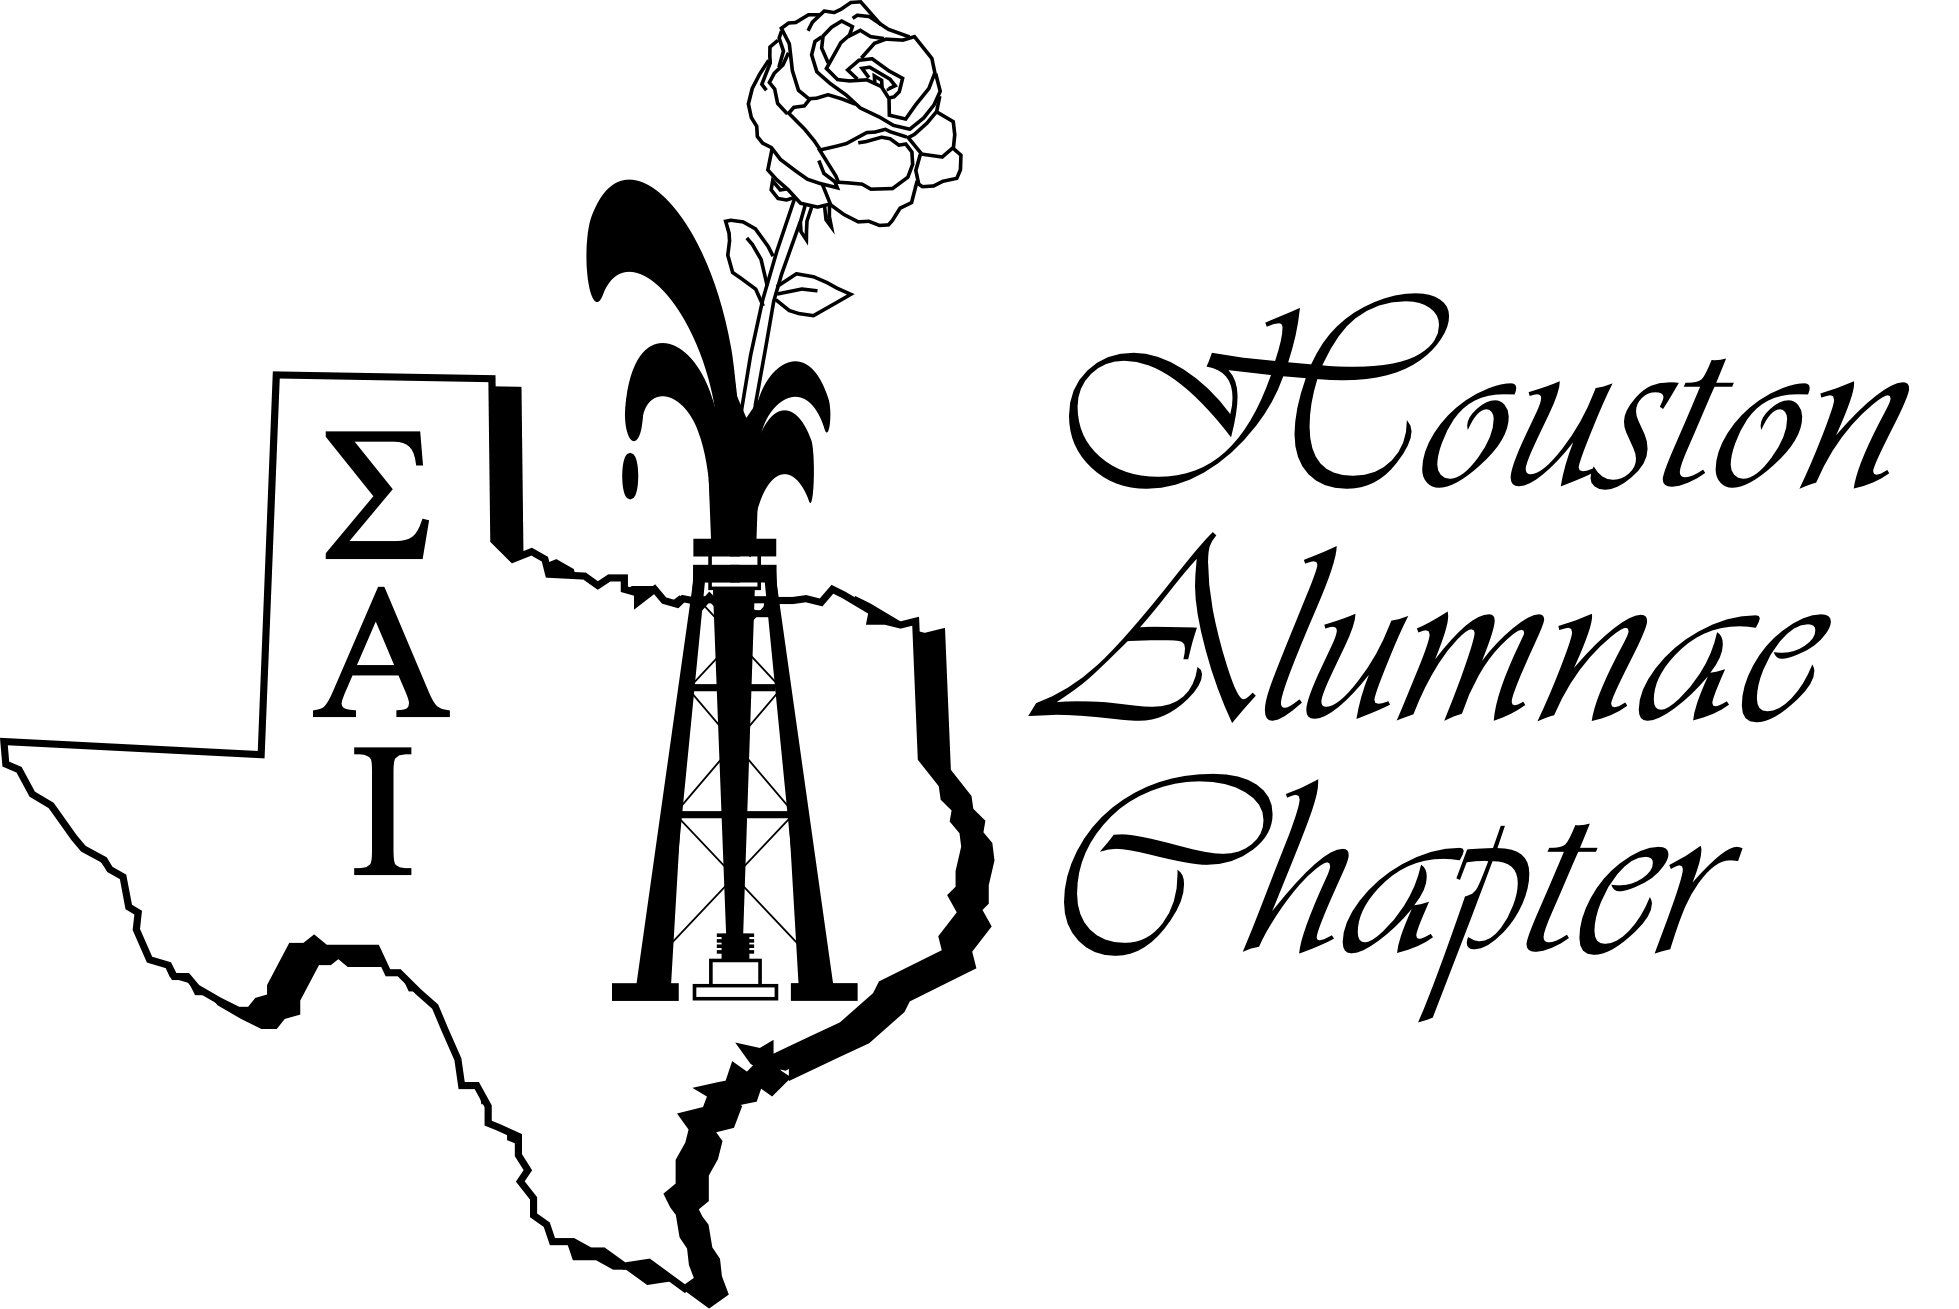 SAI Houston Alumnae Chapter